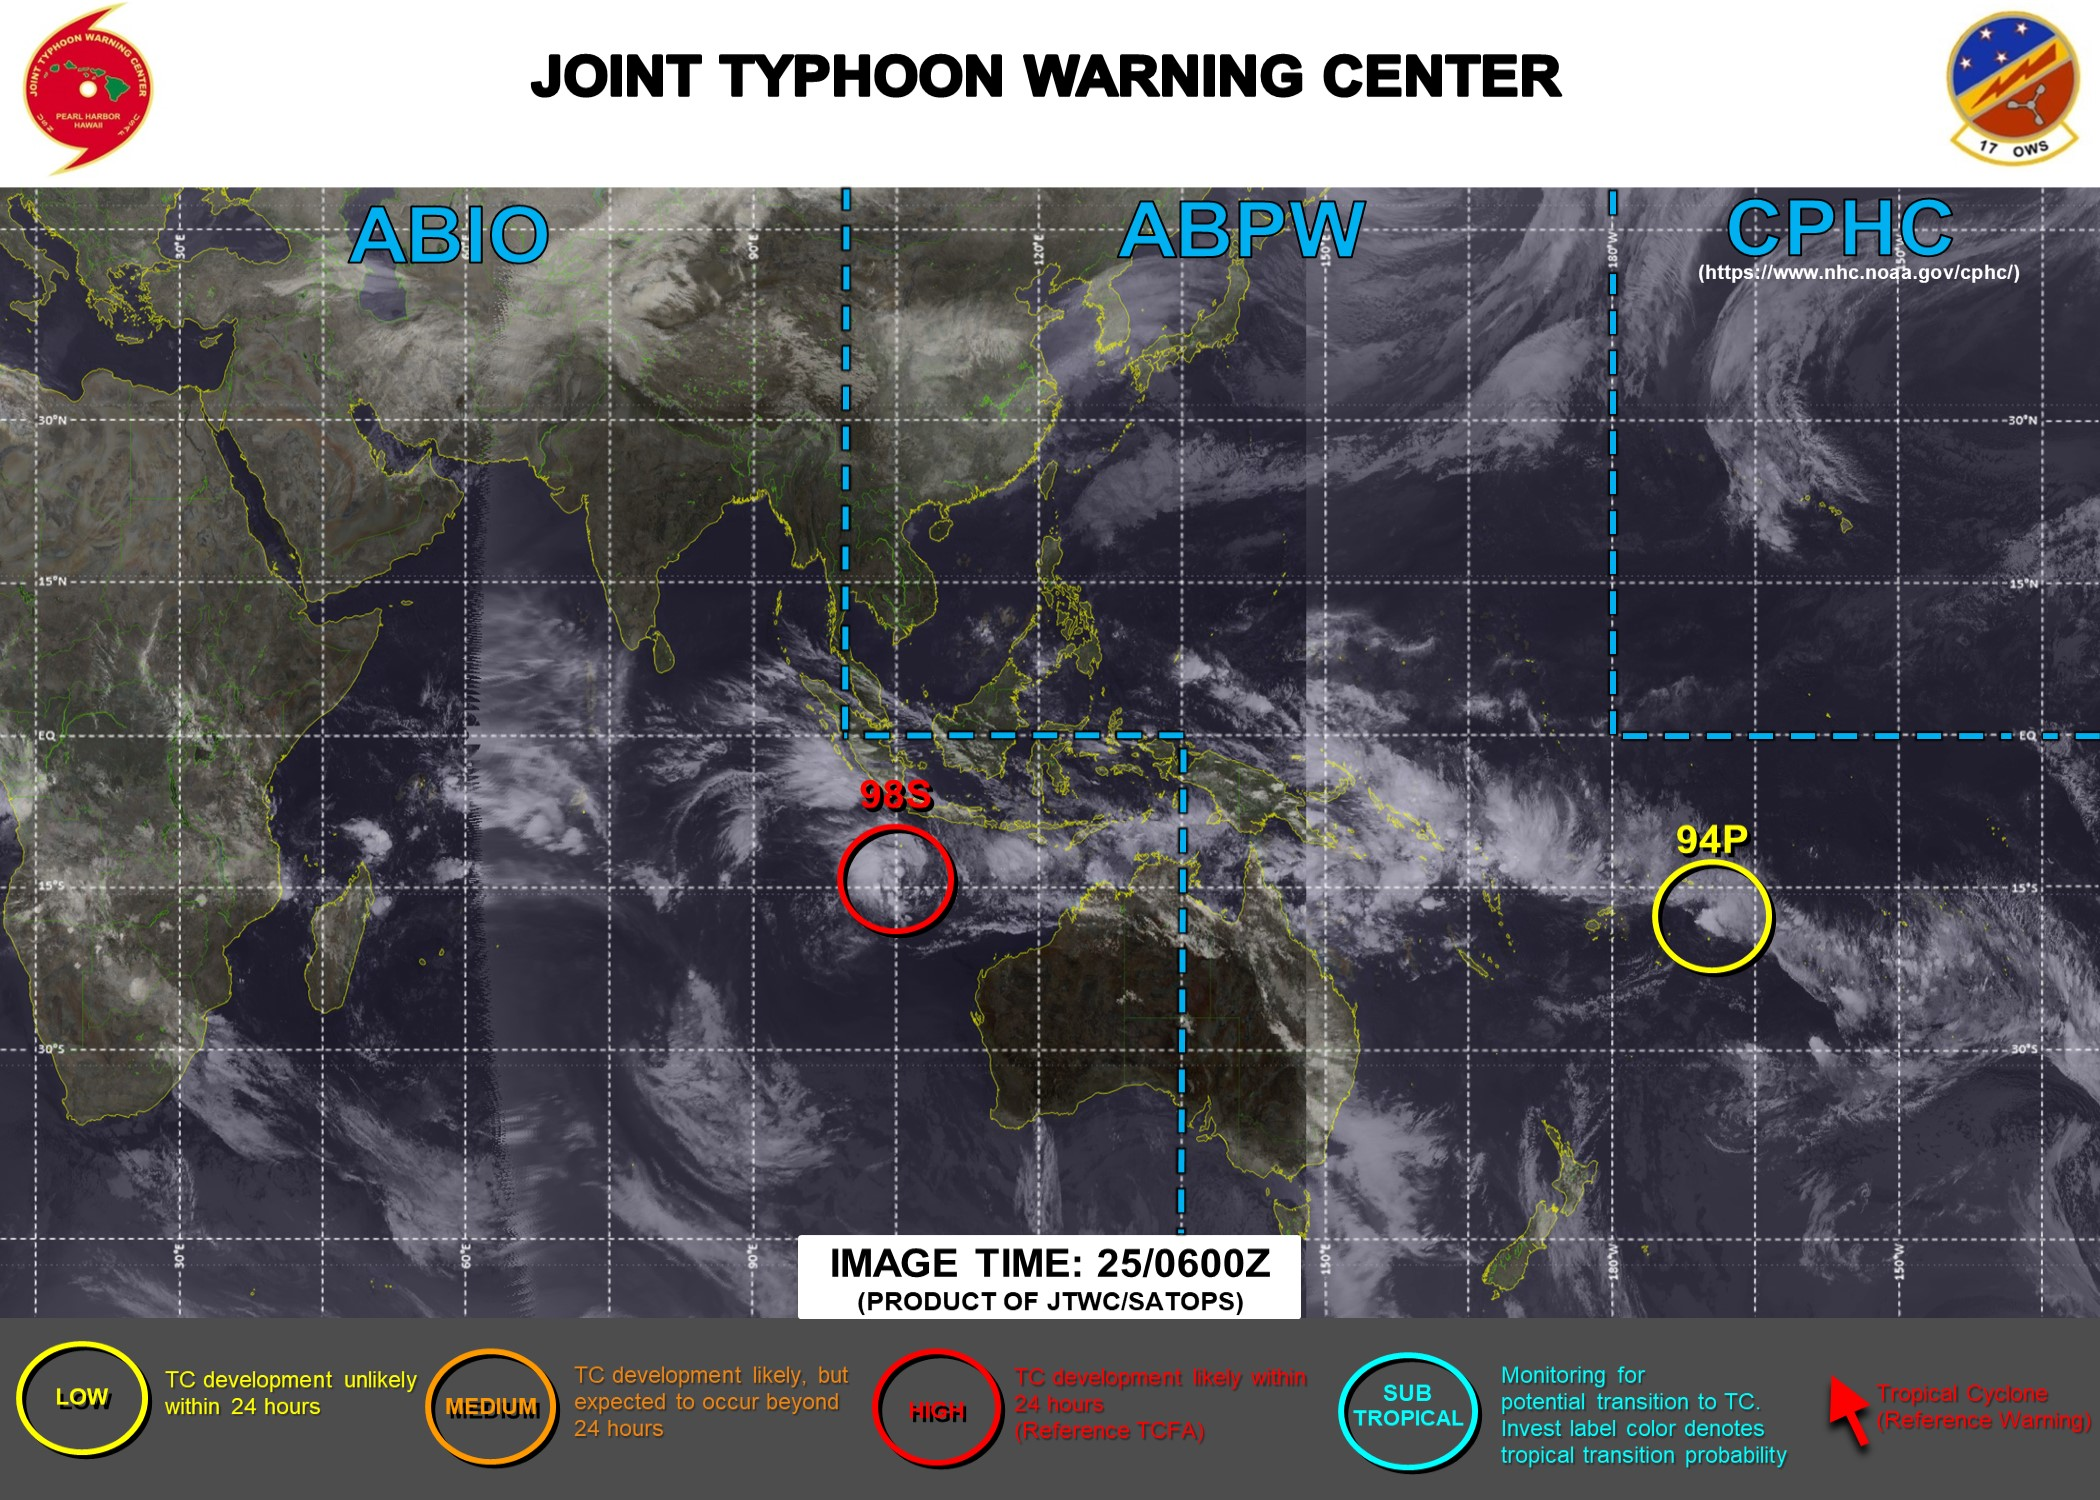 25/06UTC. JTWC HAS UP-GRADED INVEST 98S TO HIGH WHEREAS INVEST 94P REMAINS LOW. 3HOURLY SATELLITE BULLETINS ARE ISSUED FOR 98S.